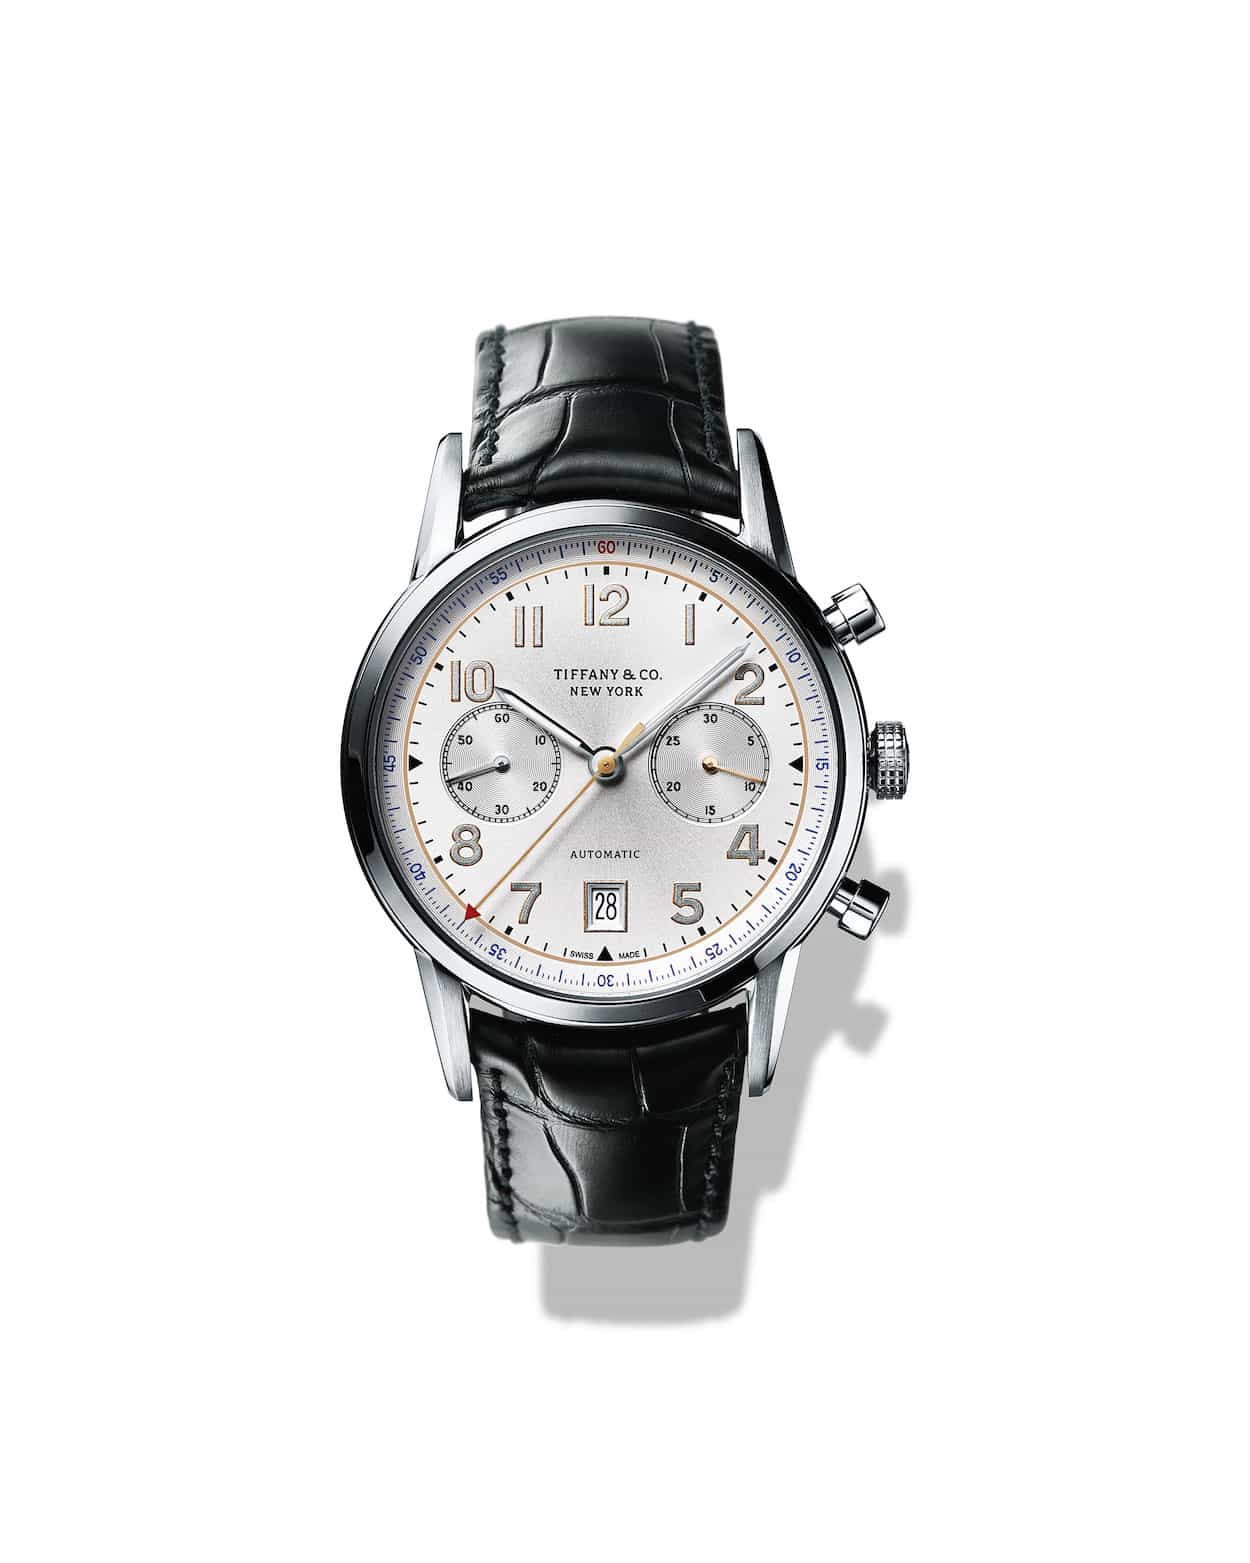 99f4c6635c Introducing the Tiffany CT60 Watch Collection